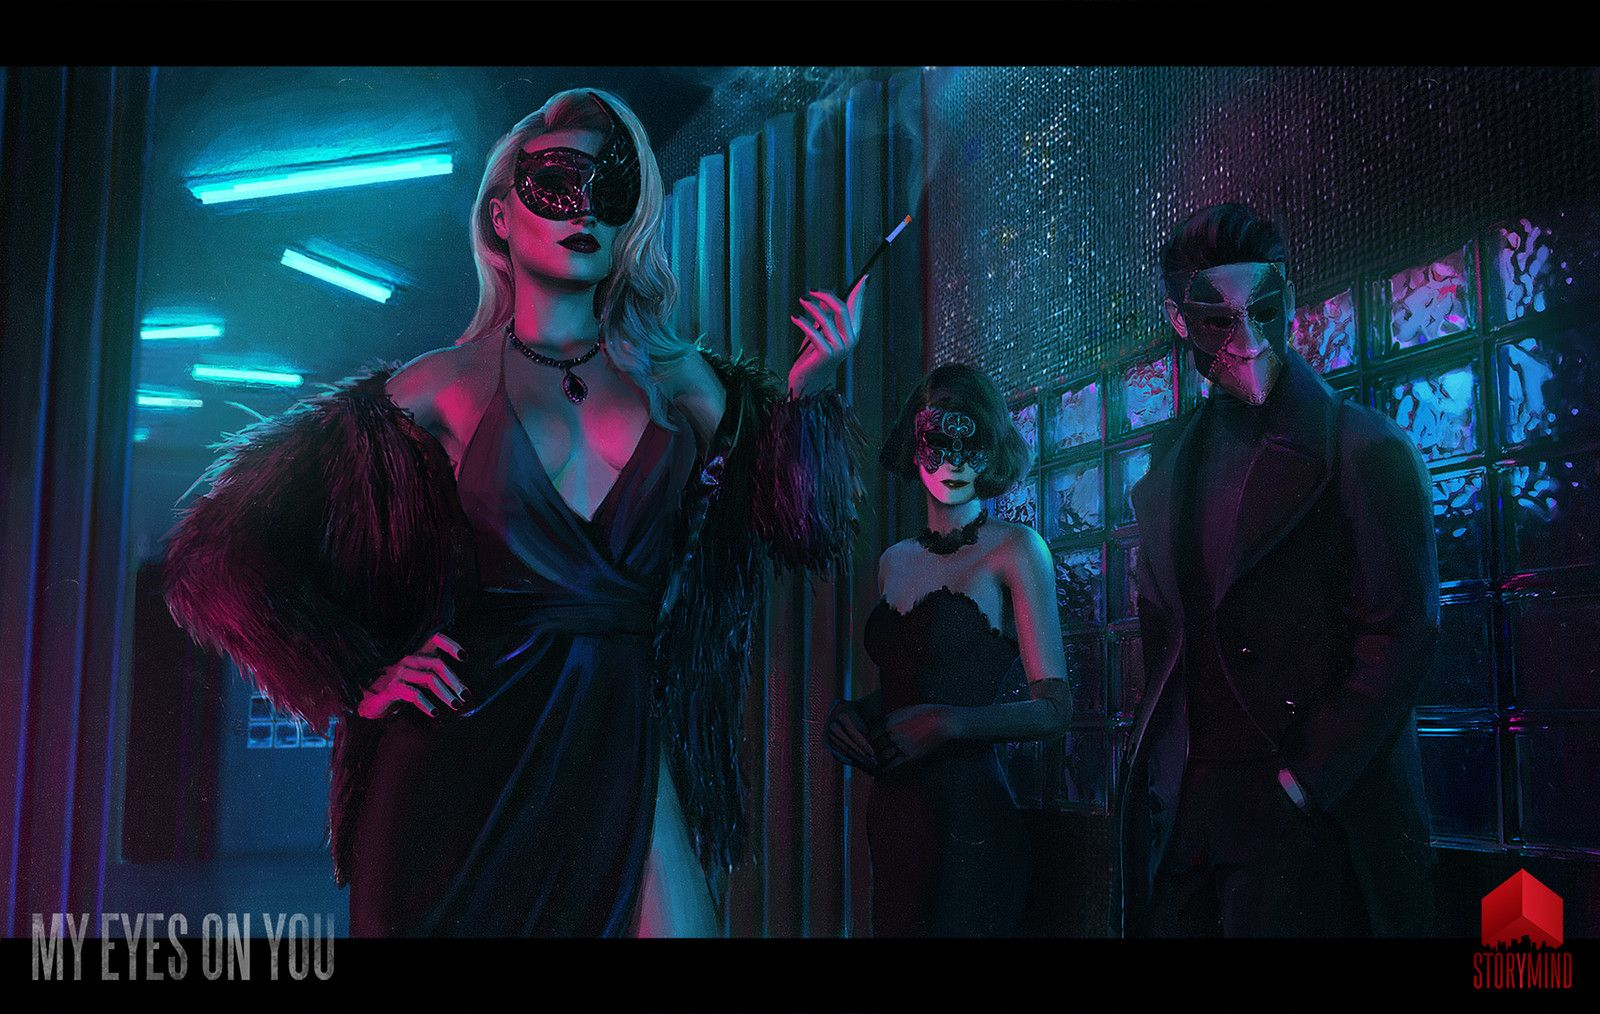 Masquerade, Tony Skeor on ArtStation at https://www.artstation.com/artwork/BWkrl